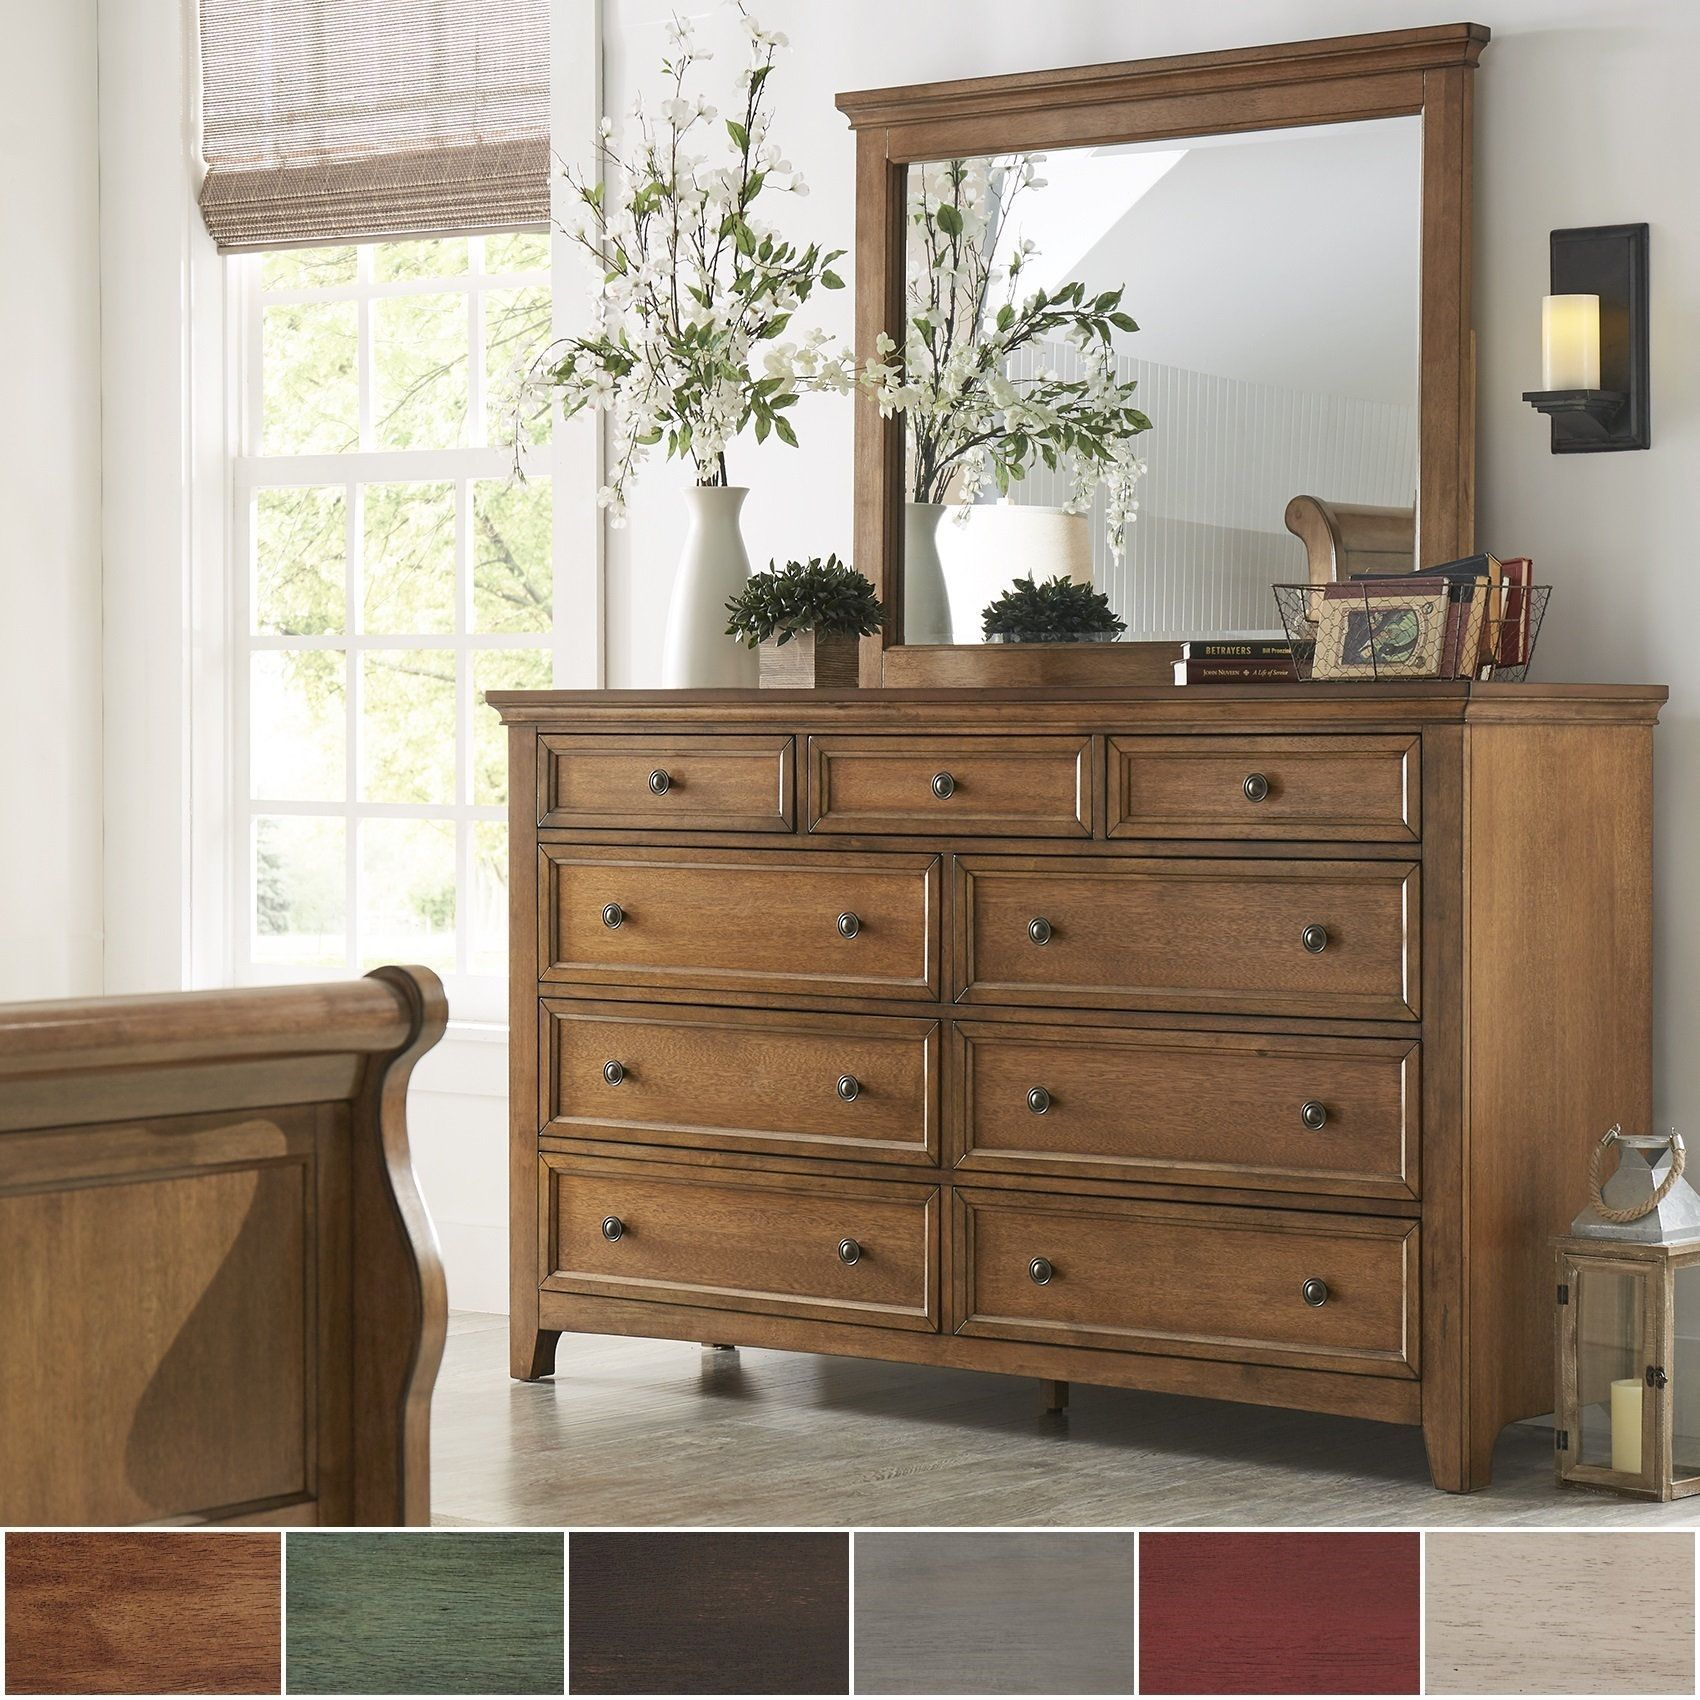 Ediline 9-Drawer Wood Modular Storage Dresser and Mirror by iNSPIRE Q  Classic (Antique